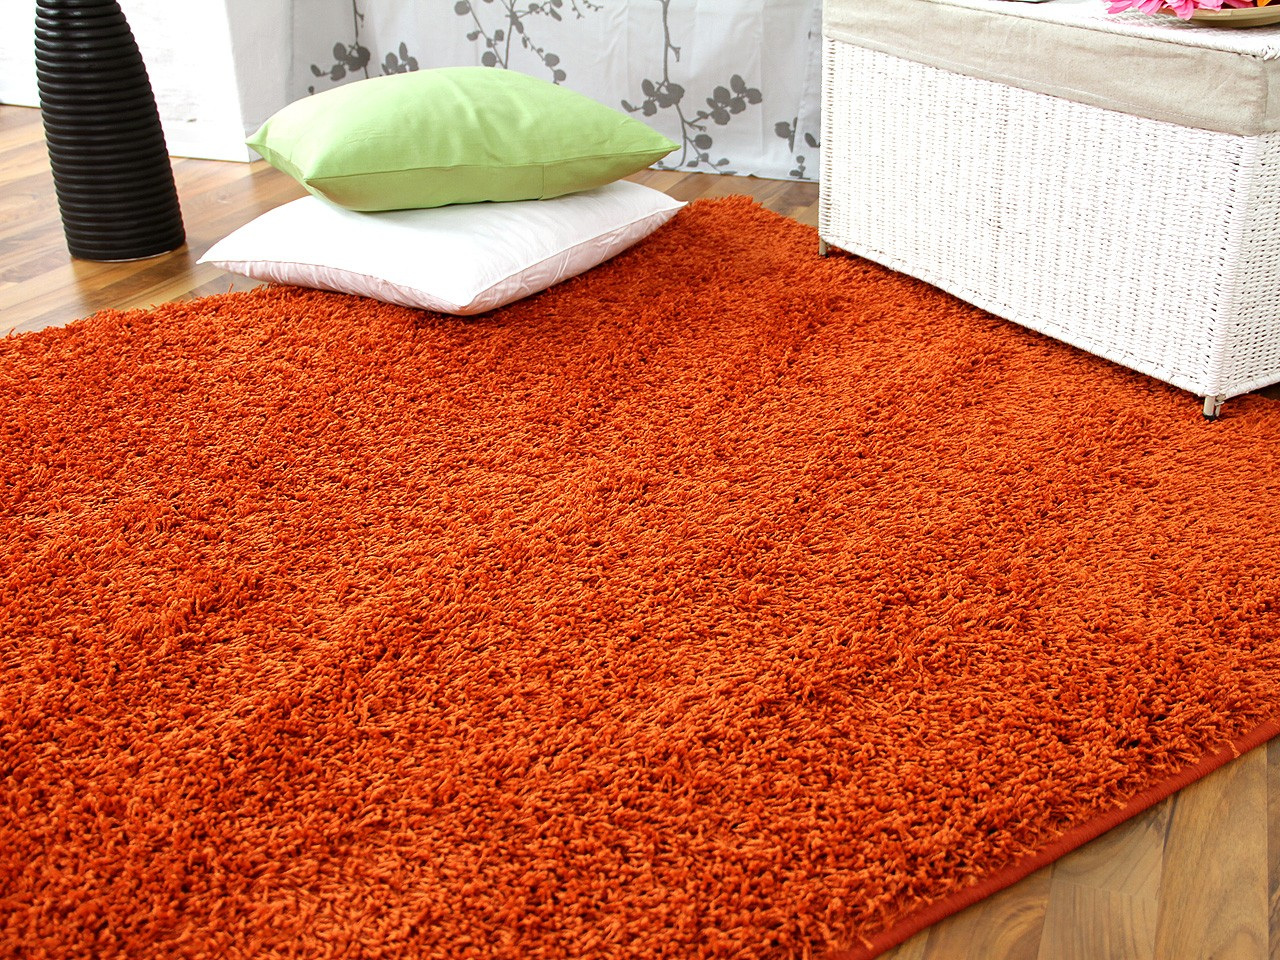 hochflor langflor teppich shaggy nova orange sonderaktion sonderposten hochflor langflor. Black Bedroom Furniture Sets. Home Design Ideas